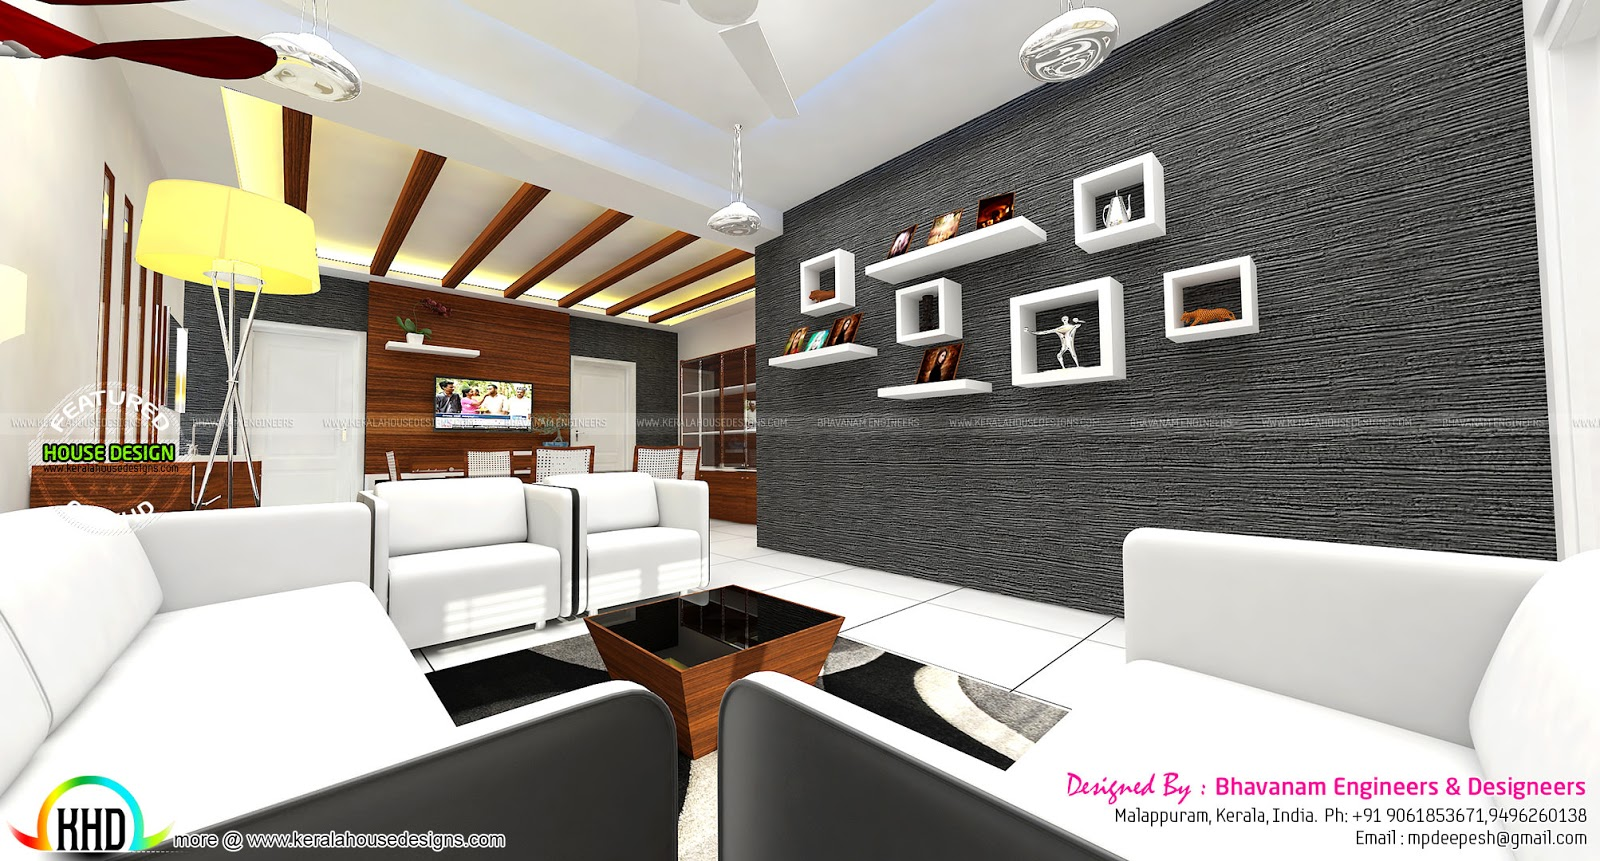 Living room interior decors ideas kerala home design and Drawing room interior design photos